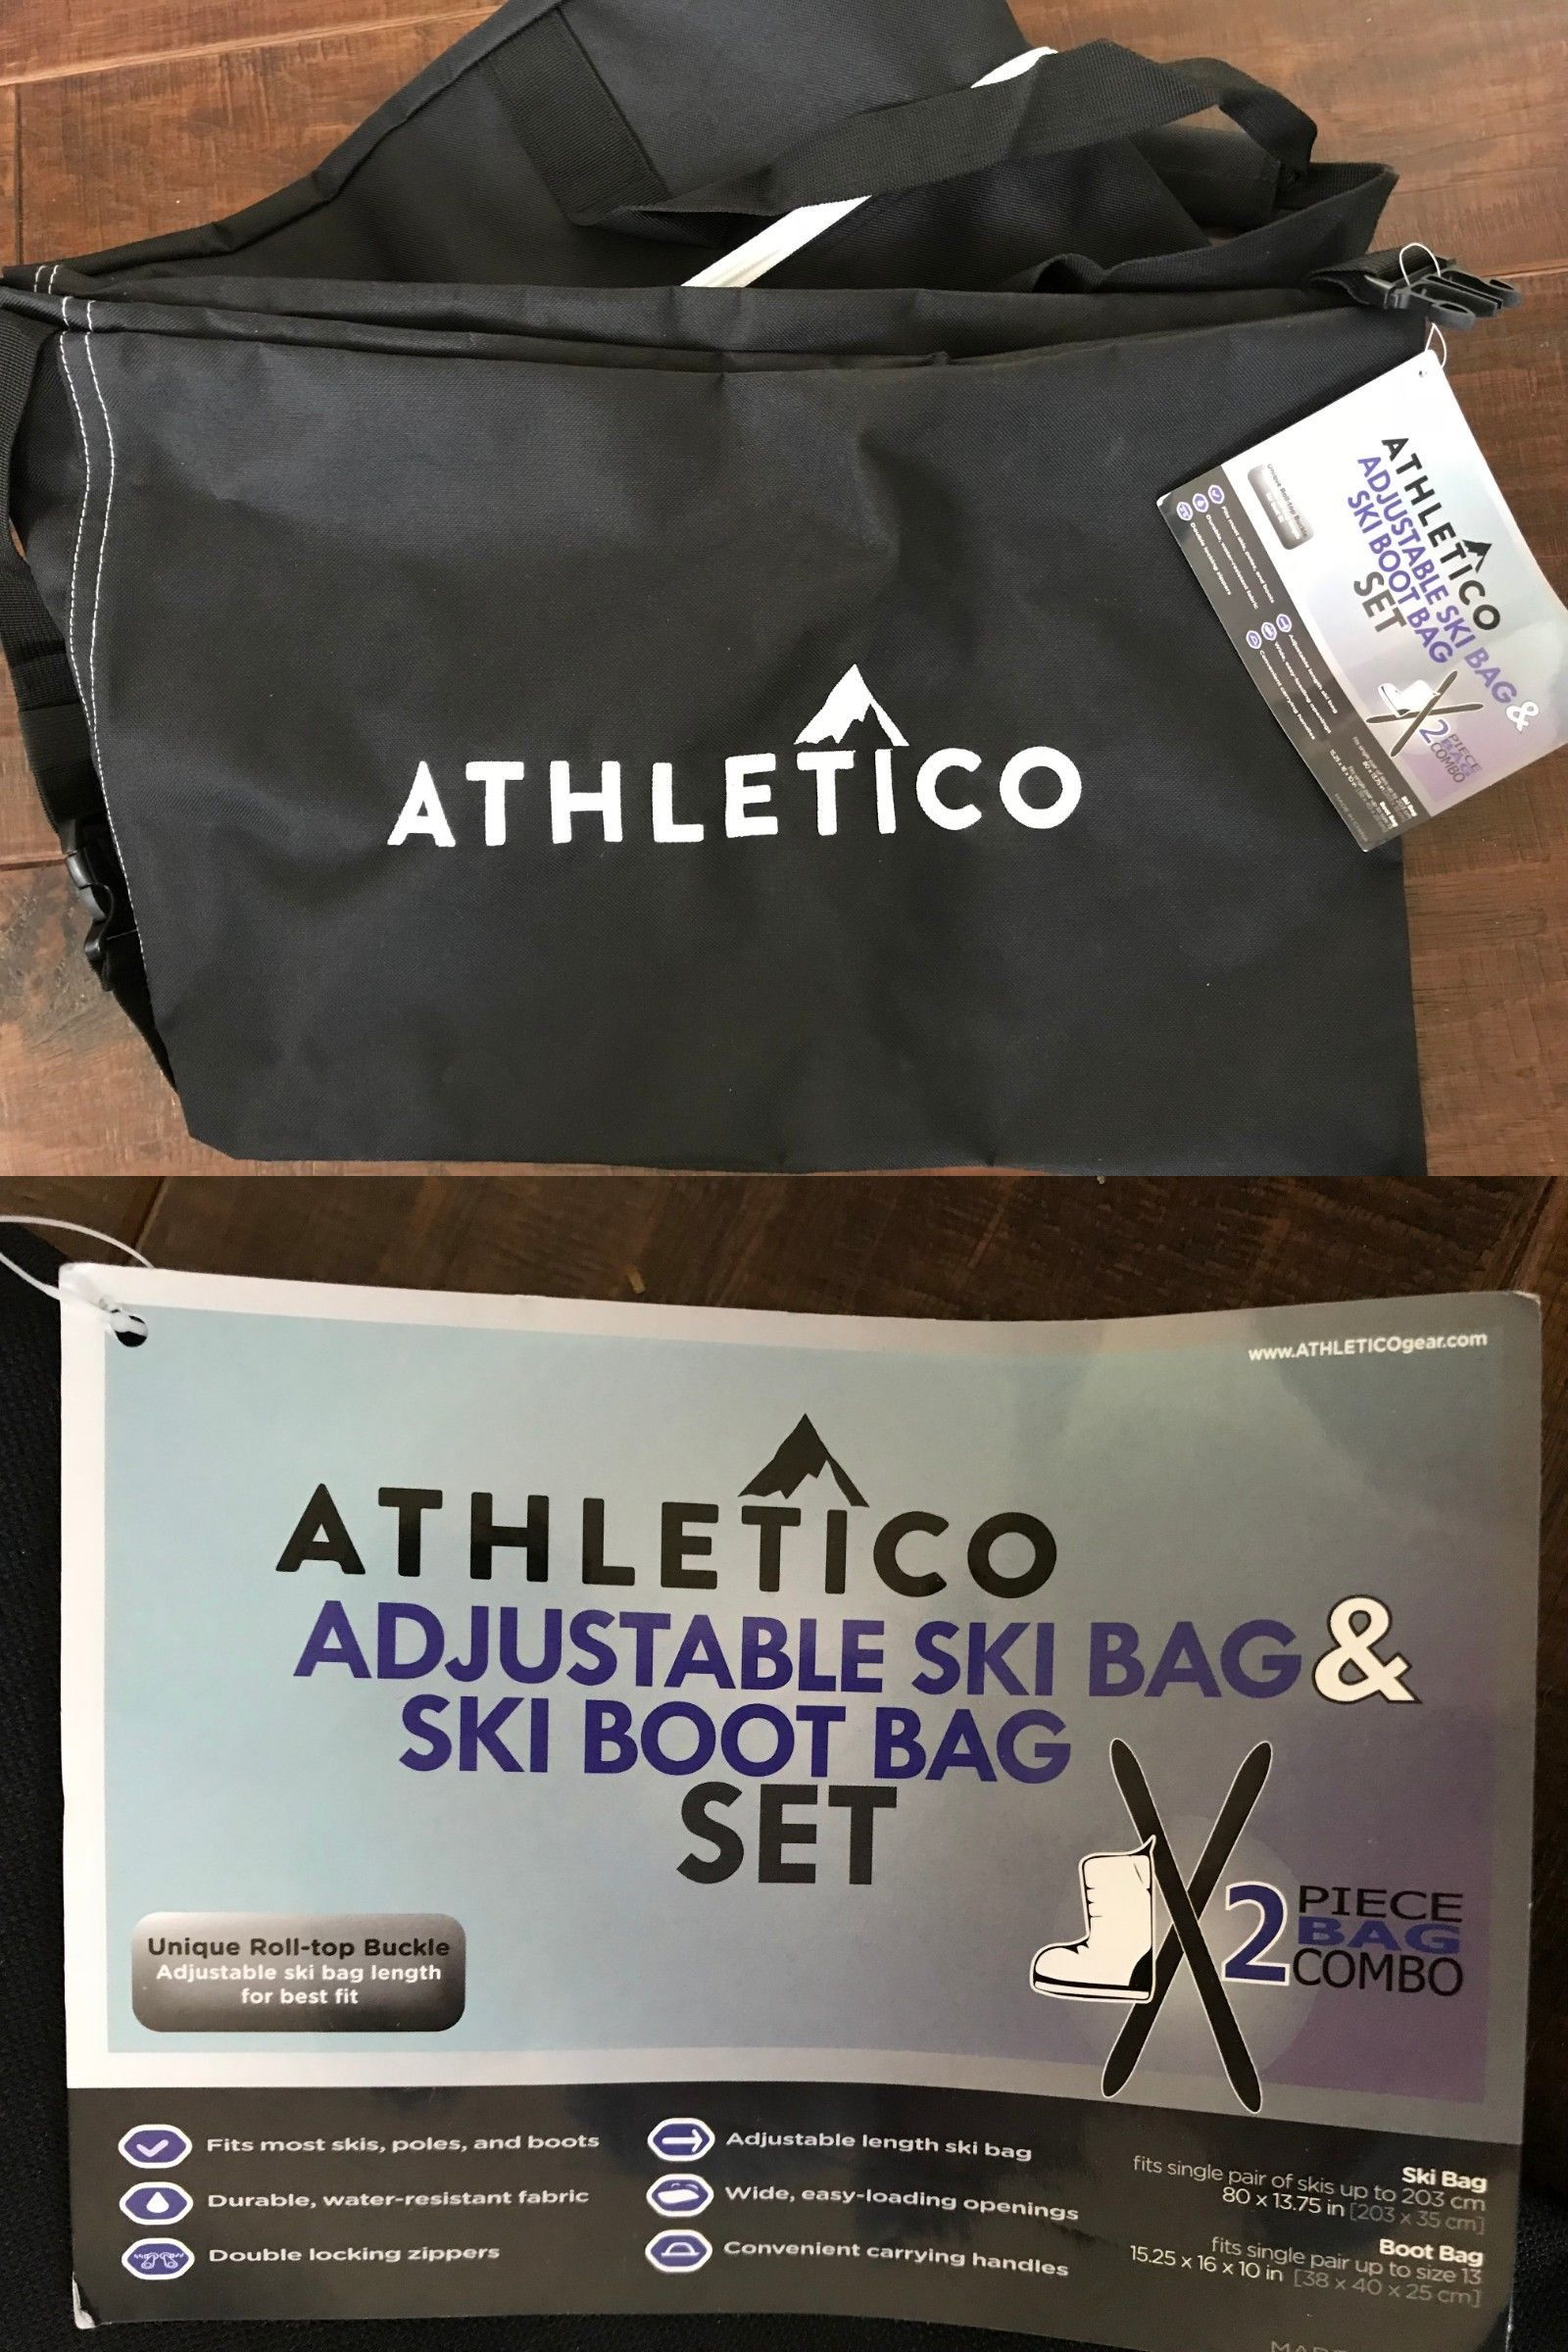 f386ab0a46e1 Bags and Backpacks 21229  Athletico Ski Bag New Store Transport Skis  Adjustable -  BUY IT NOW ONLY   24.99 on  eBay  backpacks  athletico  store   transport ...